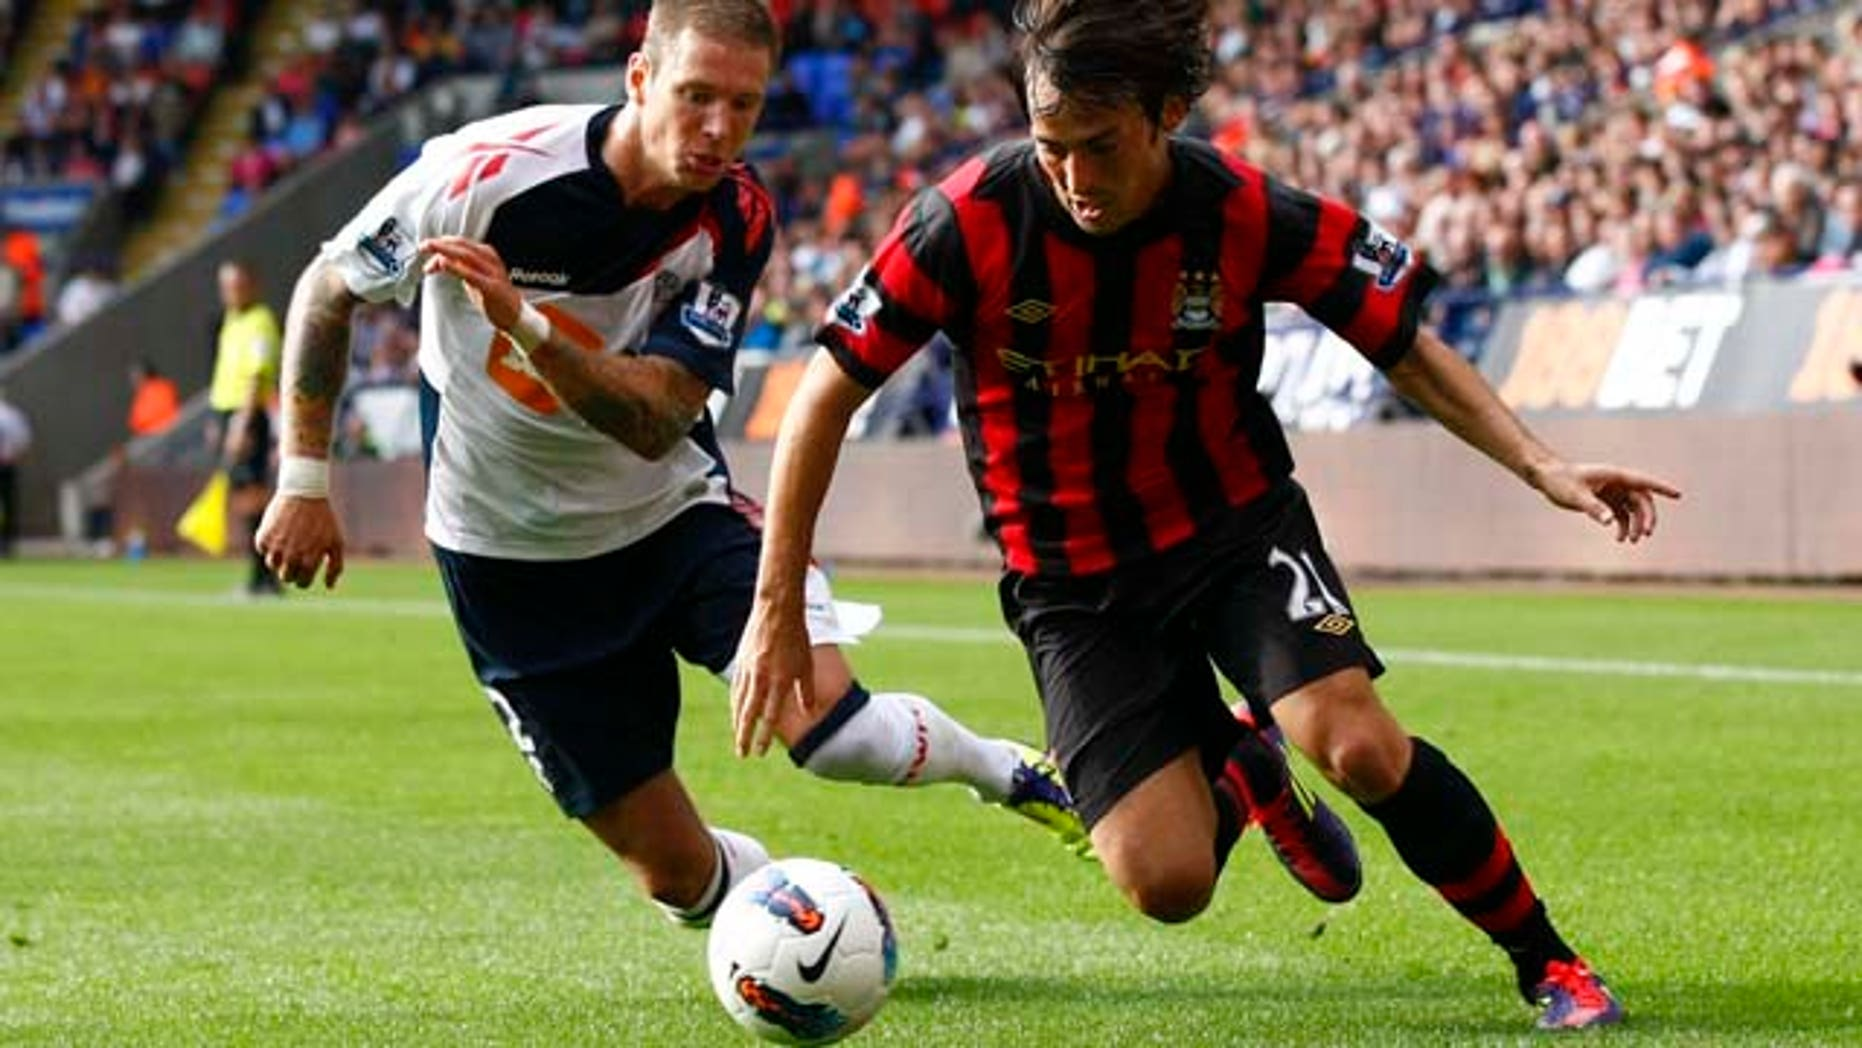 Manchester City's David Silva, right, vies for the ball against Bolton's Gretar Steinsson during their English Premier League soccer match at the Reebok Stadium, Bolton, England, Sunday Aug. 21, 2011. (AP Photo/Tim Hales)